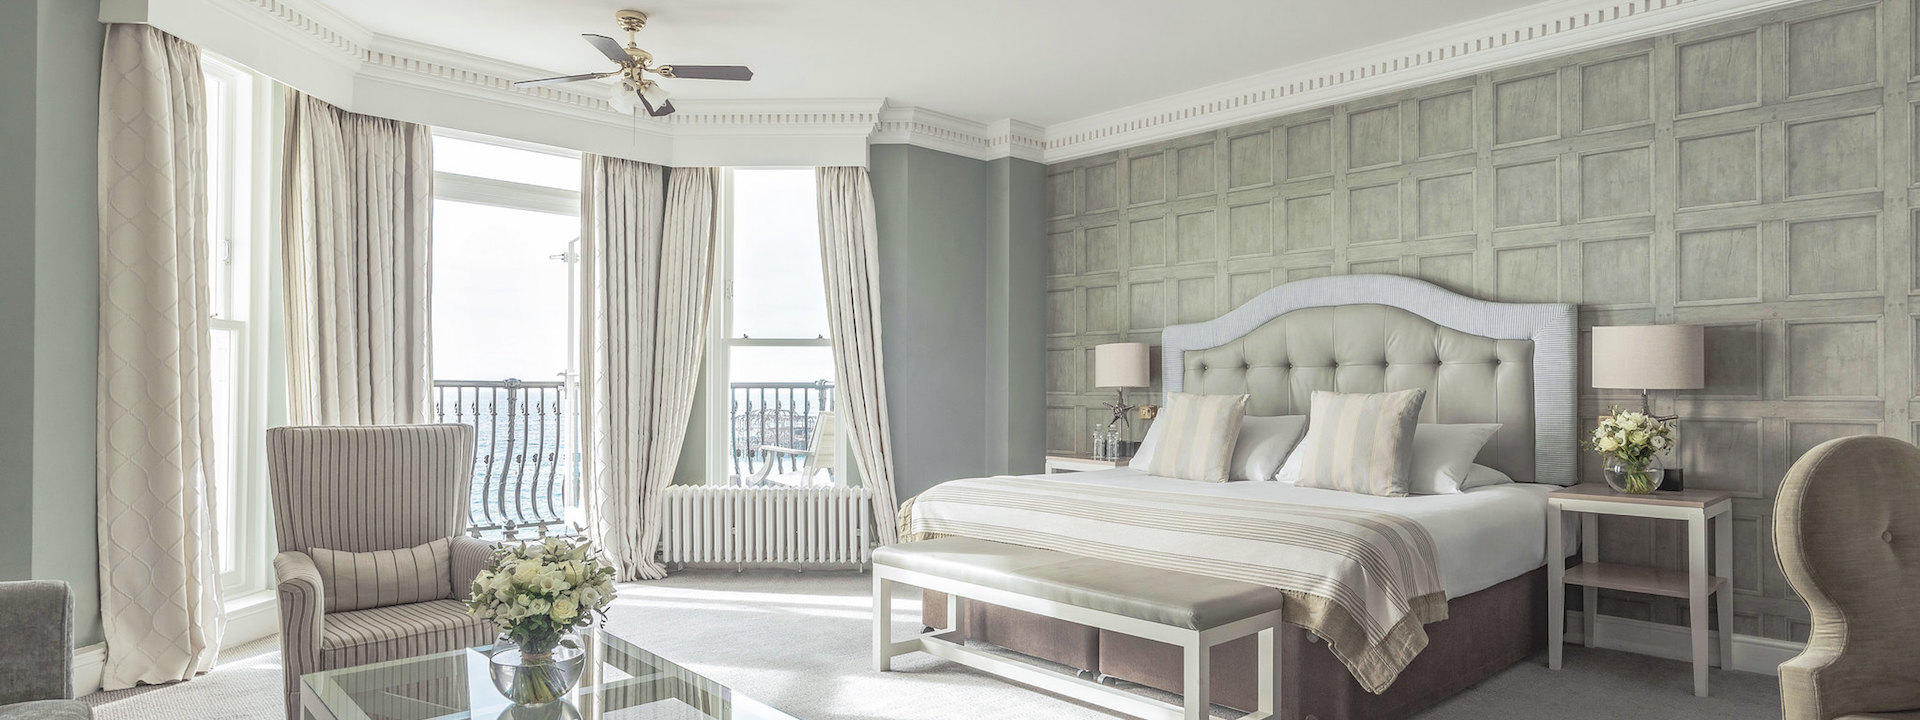 Bedroom at The Grand Brighton